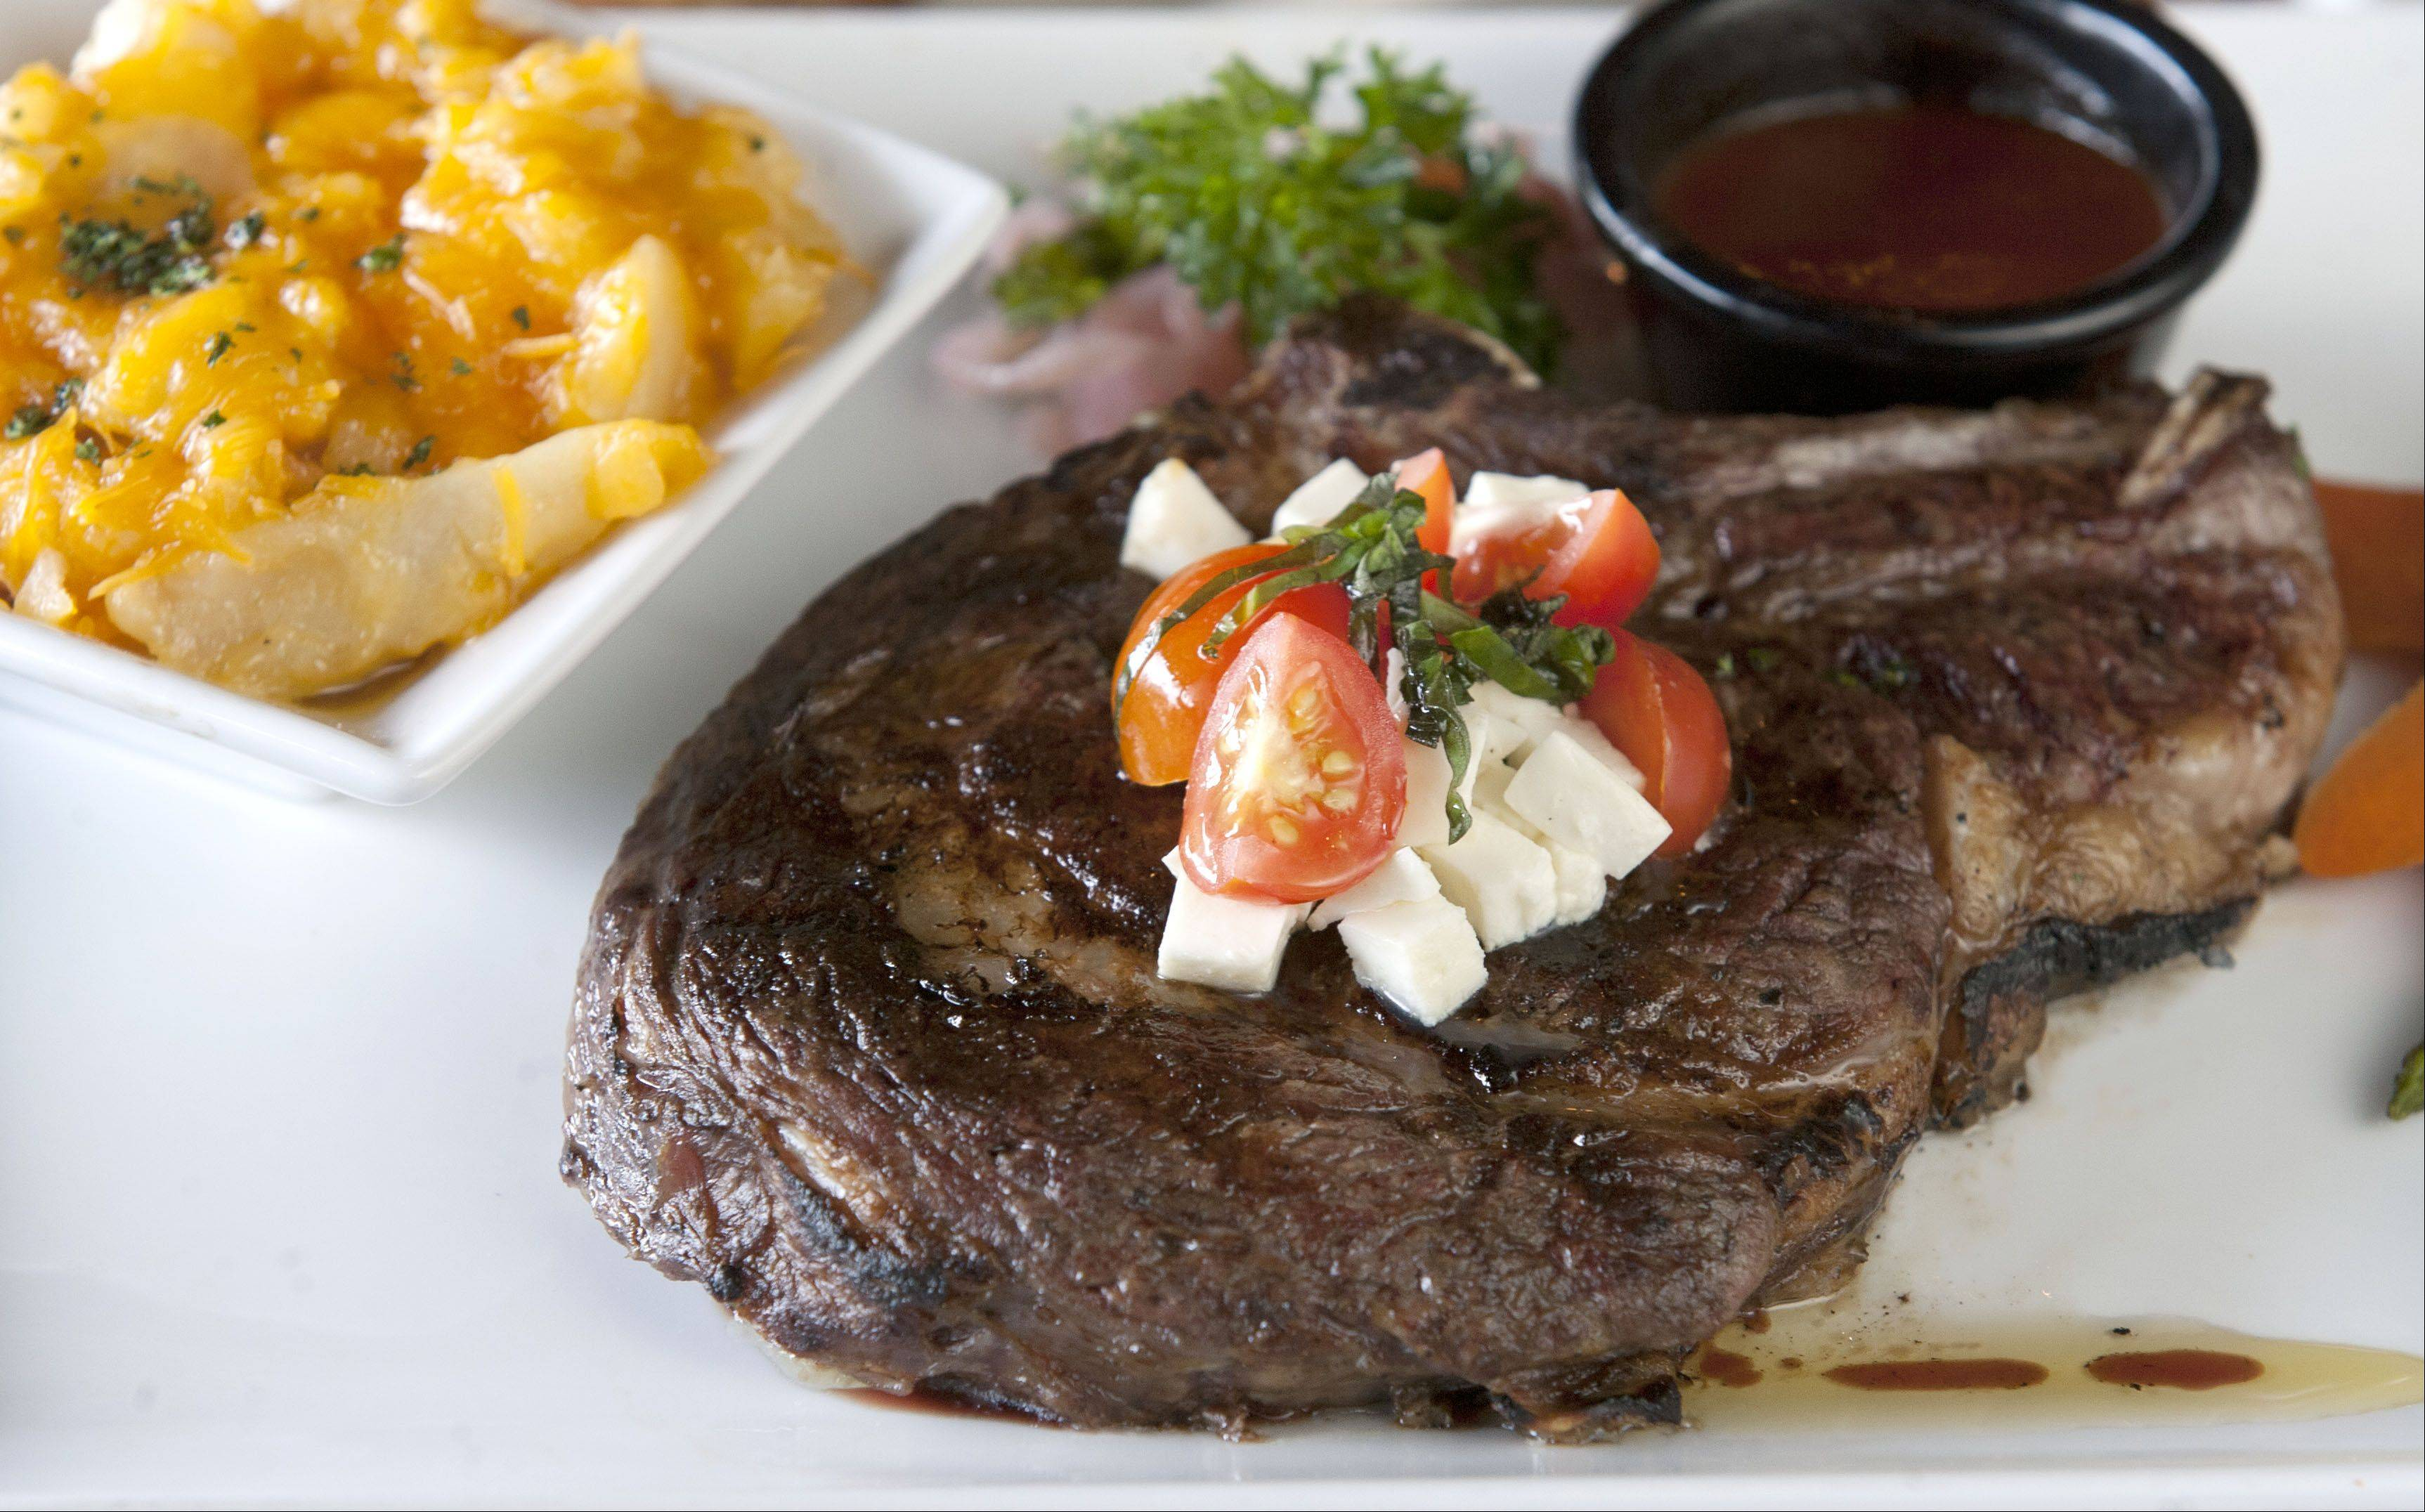 The Bank Restaurant in downtown Wheaton offers modern American cuisine and hearty portions, like this 20-ounce bone-in rib-eye steak.